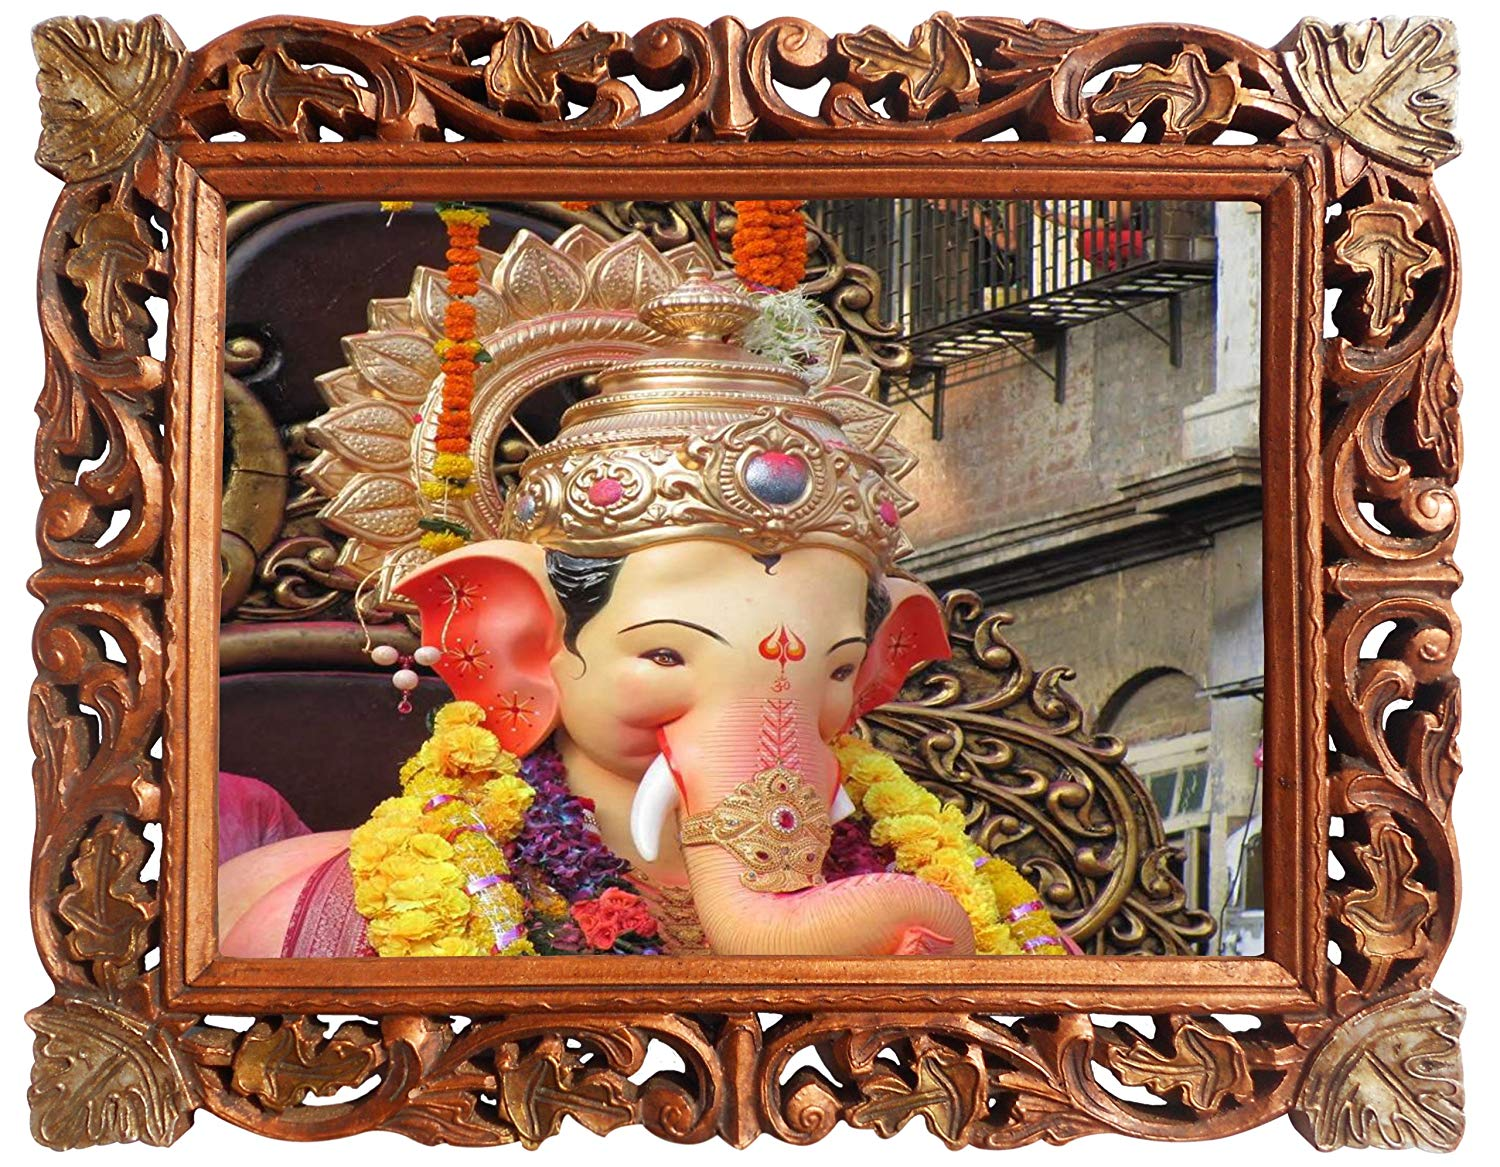 Lord Ganpati Ganesha Poster Frame in Handcrafted Wood Craft Frame, Indian Handicrafts